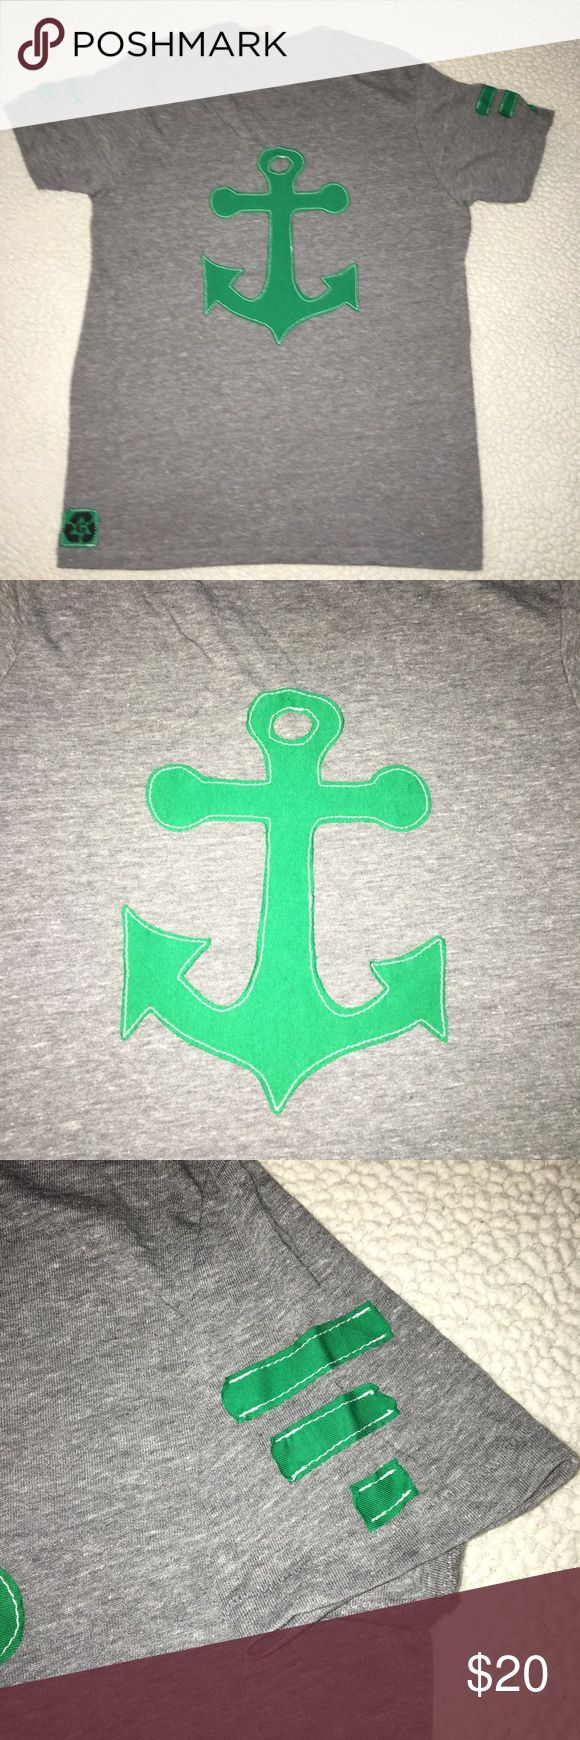 NWT alpha sigma tau sorority boyfriend V neck tee NWT Alpha Sigma Tau soft Heather gray boyfriend V neck short sleeve tee. Size AM. 50% polyester 38% cotton 12% rayon. Green anchor logo appliqué on back. Relaxed, loose fit. Solid front. Made in USA. $54 retail. Rare and one of a kind. #greek #life #college #university #alpha #sigma #tau #sorority #pledge #gray #green #anchor #big #little #sister #nwt #tee #vneck #fall #football #gameday Never used. Smoke free home. Check closet for similar…